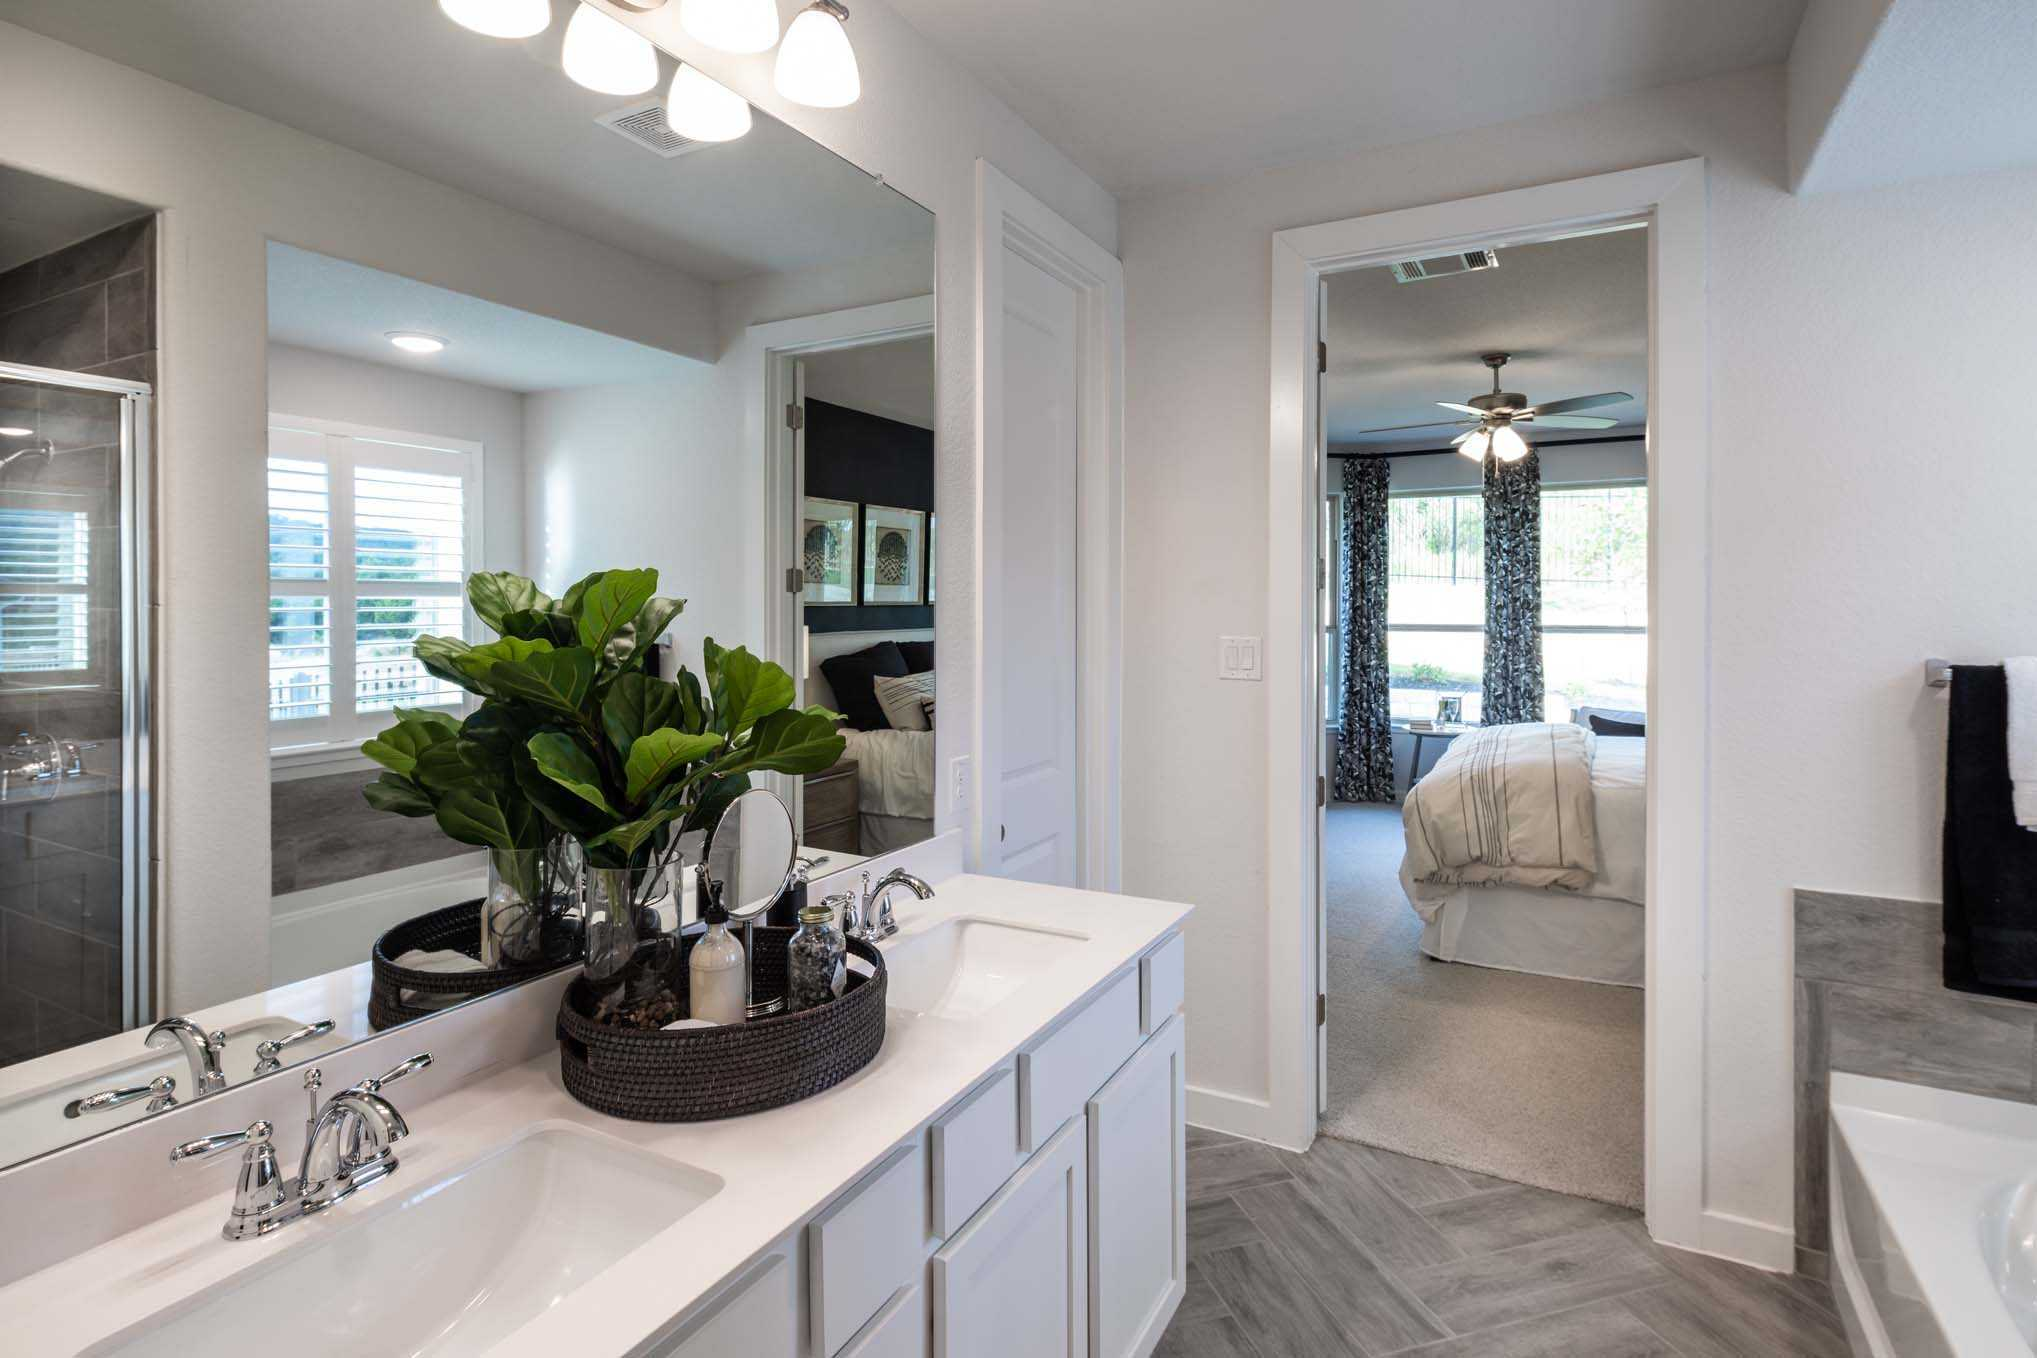 Bathroom featured in the Plan Everleigh By Highland Homes in Houston, TX